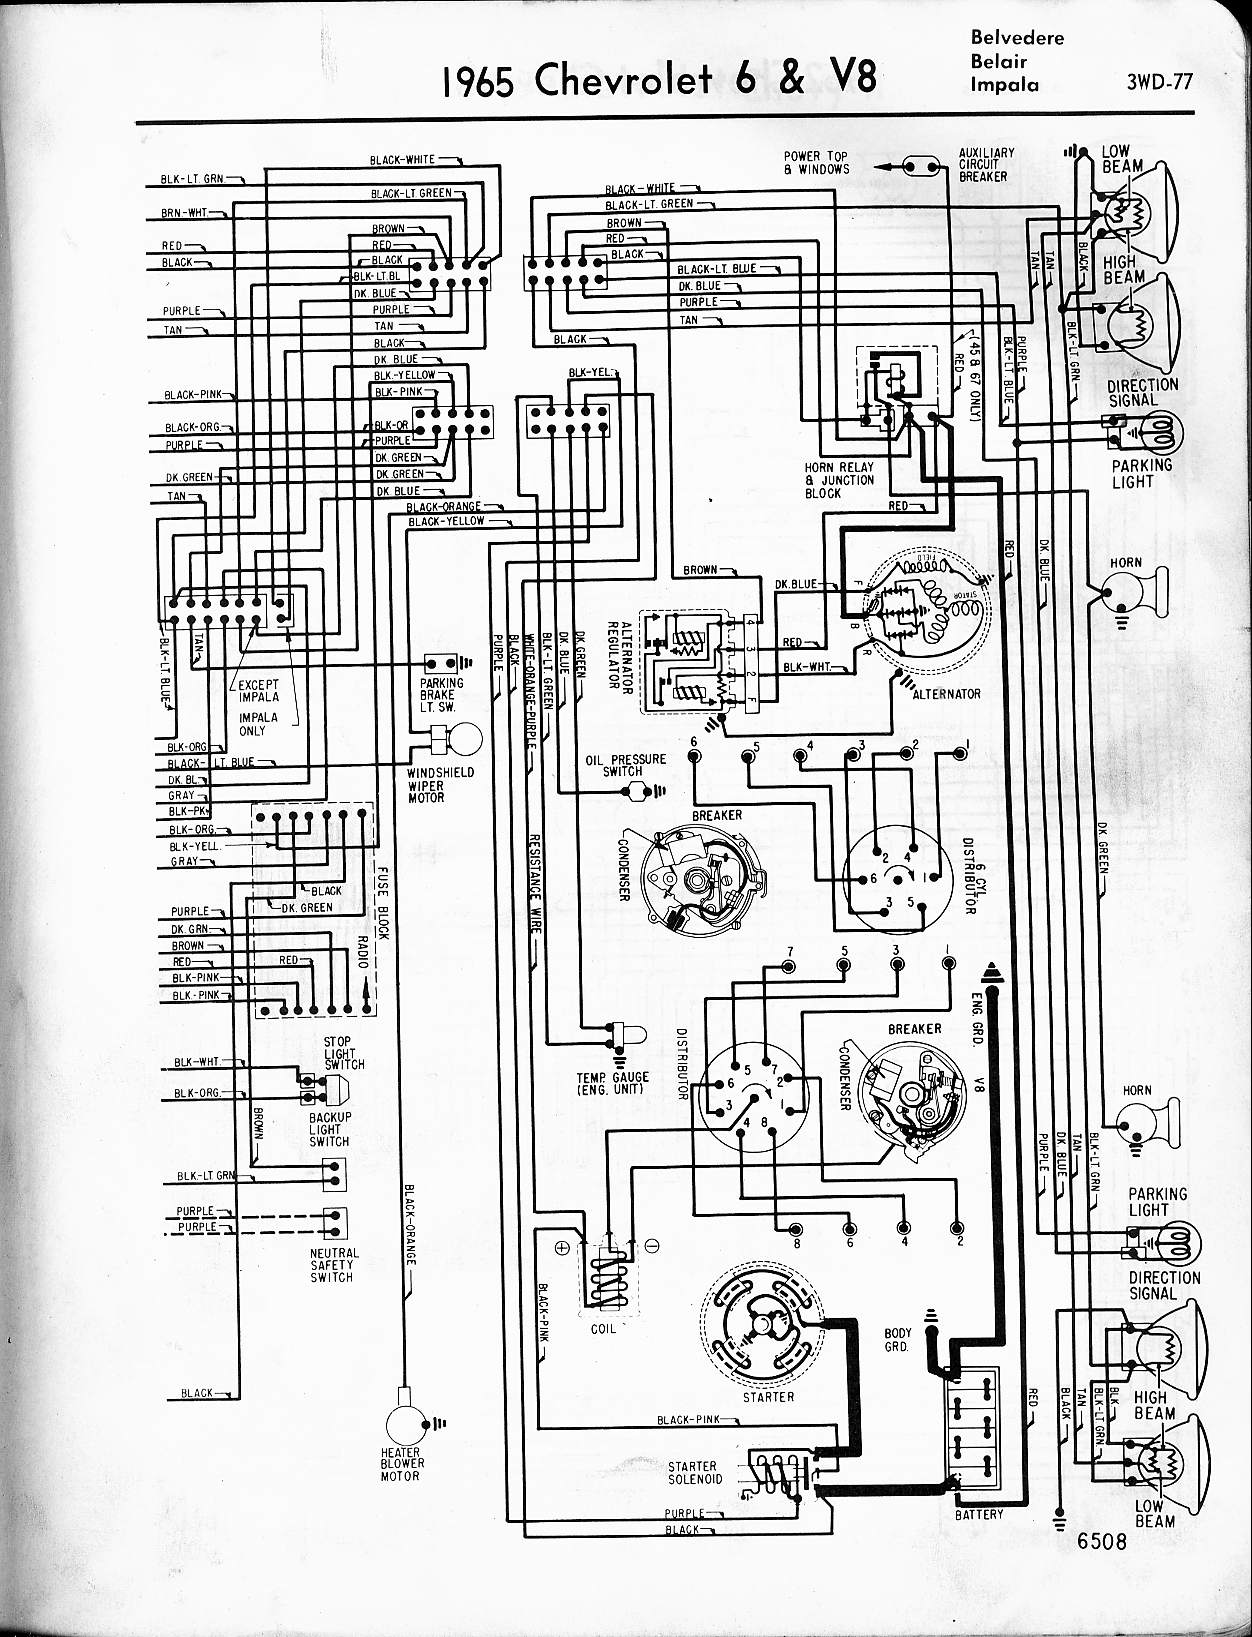 MWireChev65_3WD 077 57 65 chevy wiring diagrams 2003 impala ignition switch wiring diagram at virtualis.co